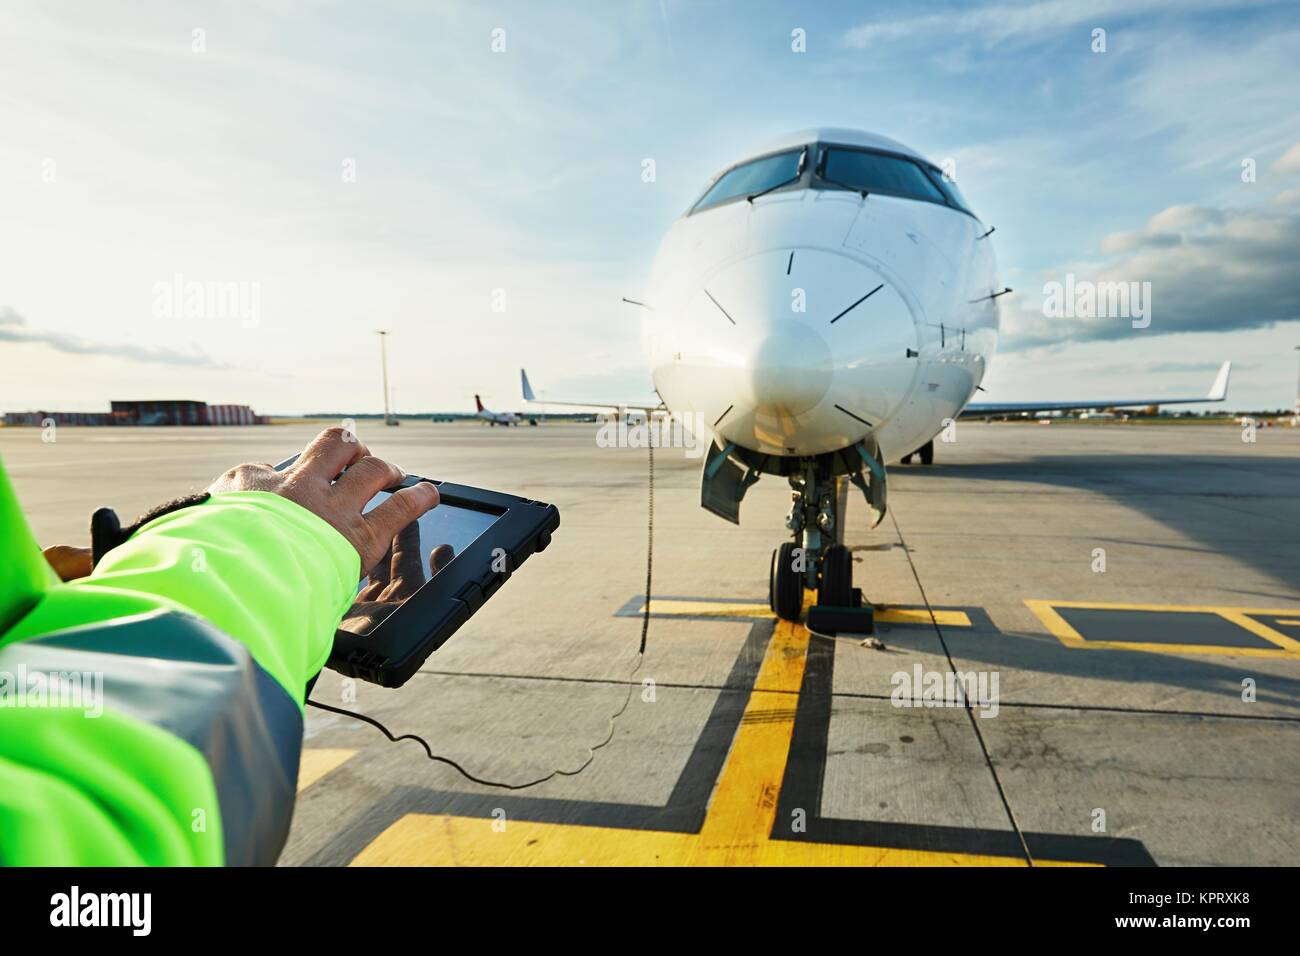 Modern technology at the airport. Member of the ground staff preparing the passenger airplane before flight. - Stock Image